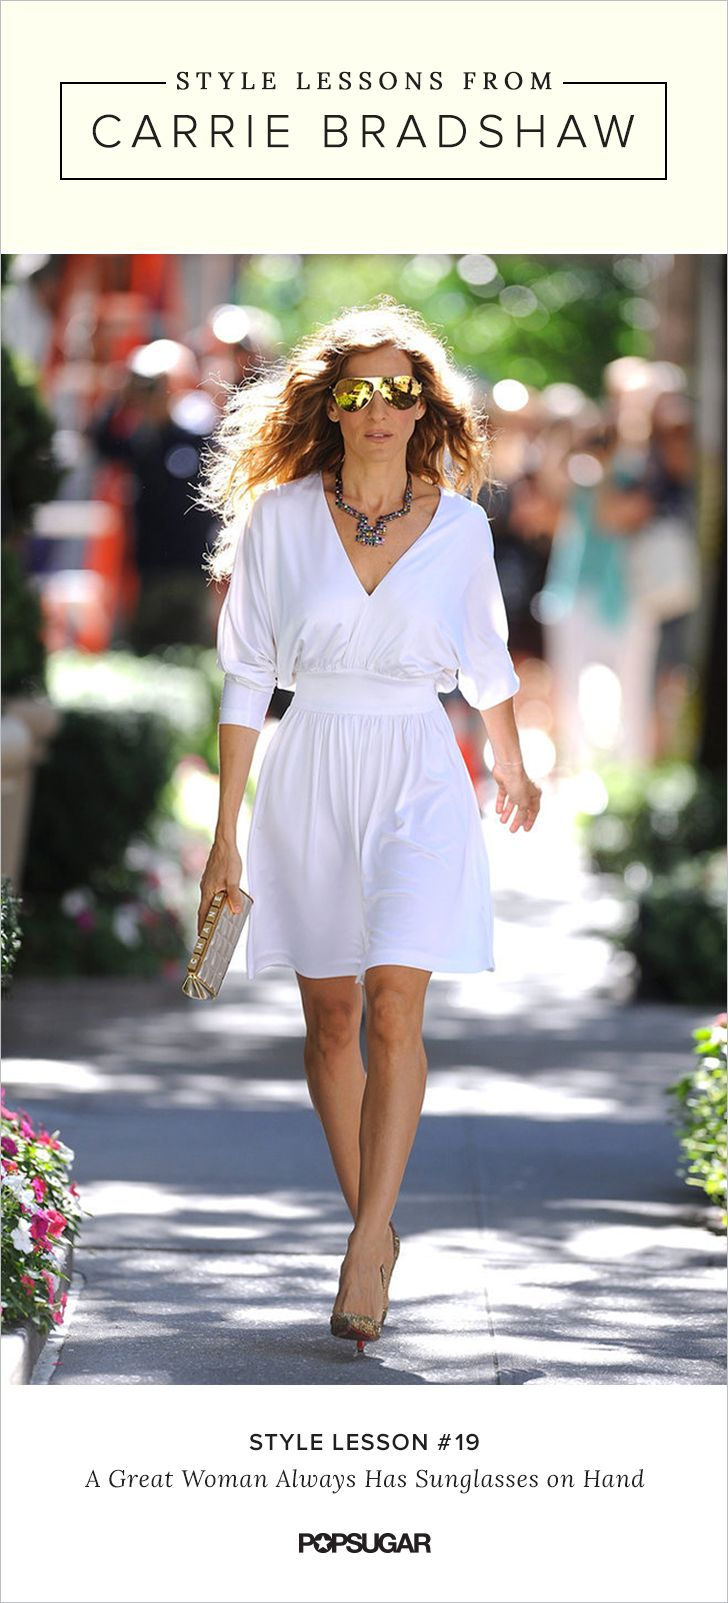 Style ideas to steal from Carrie Bradshaw on Sex and the City